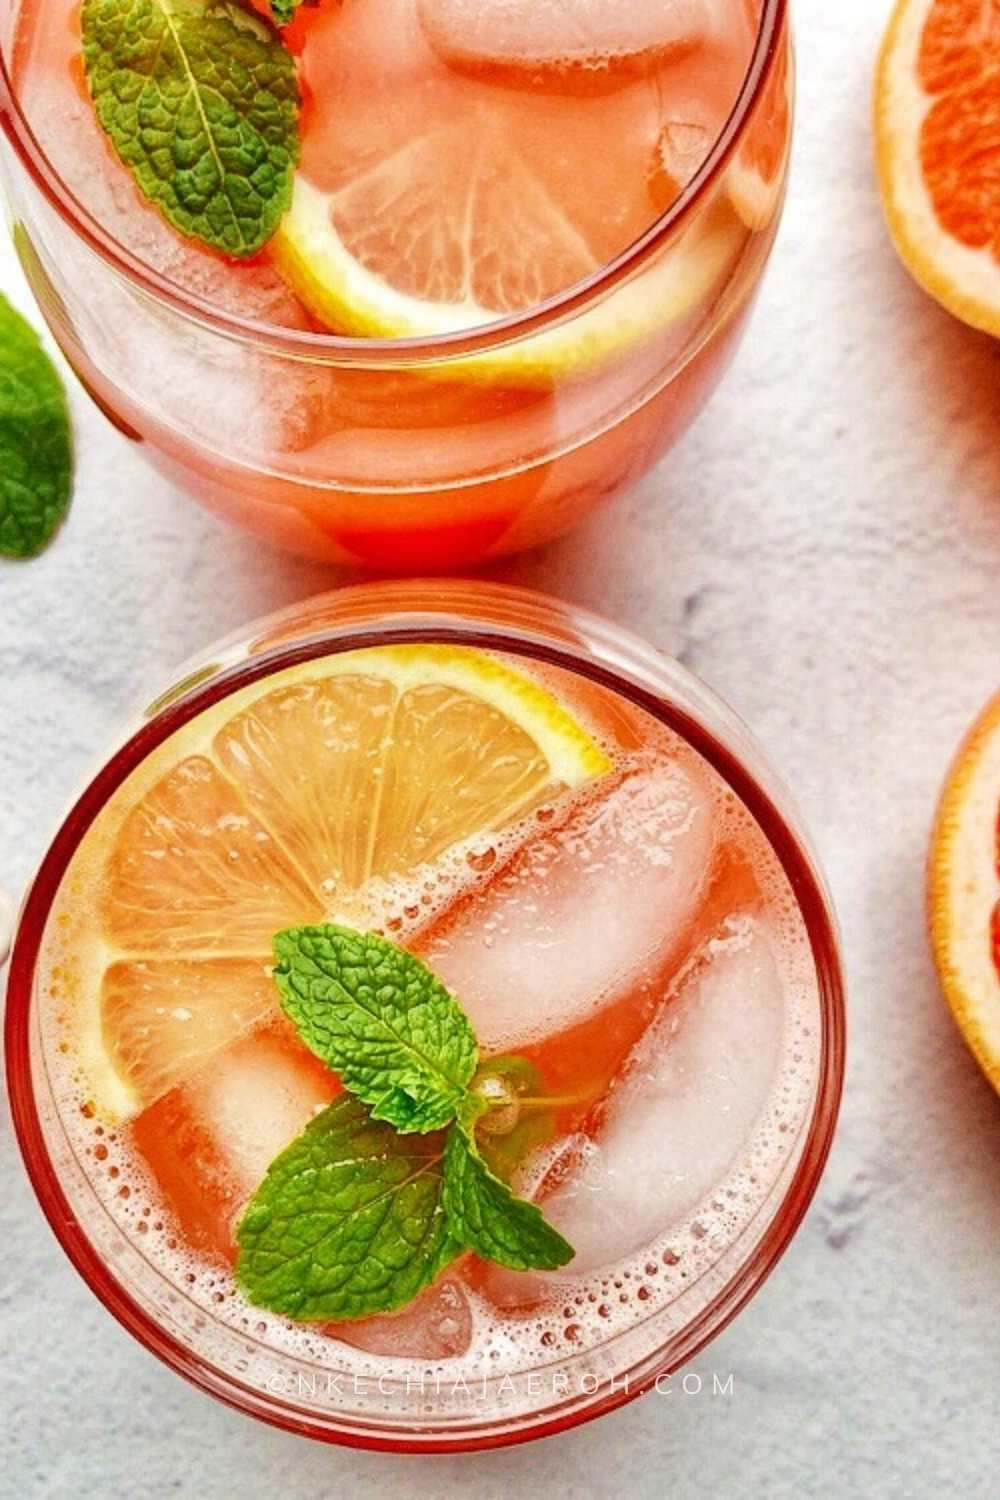 Please permit me to quickly show you how to make the best homemade grapefruit juice that you will actually love! Homemade grapefruit juice is always the best because it does not have artificial preservatives or additives! This hydrating grapefruit juice recipe is quick, easy, and invigorating.